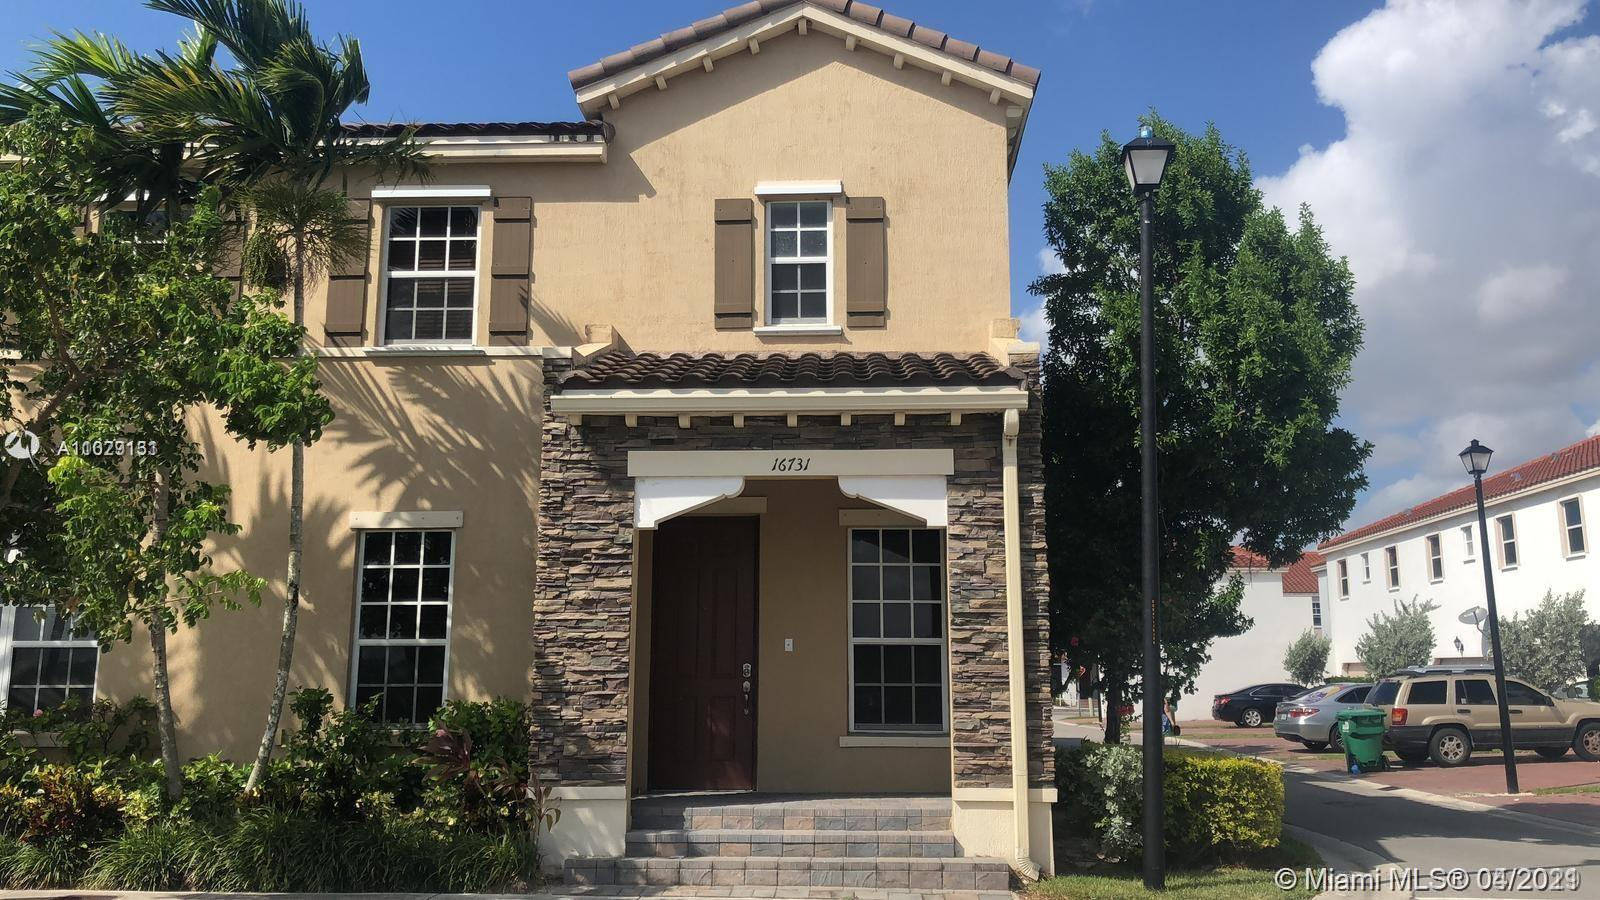 Kendall Commons - 16731 SW 96th St, Miami, FL 33196